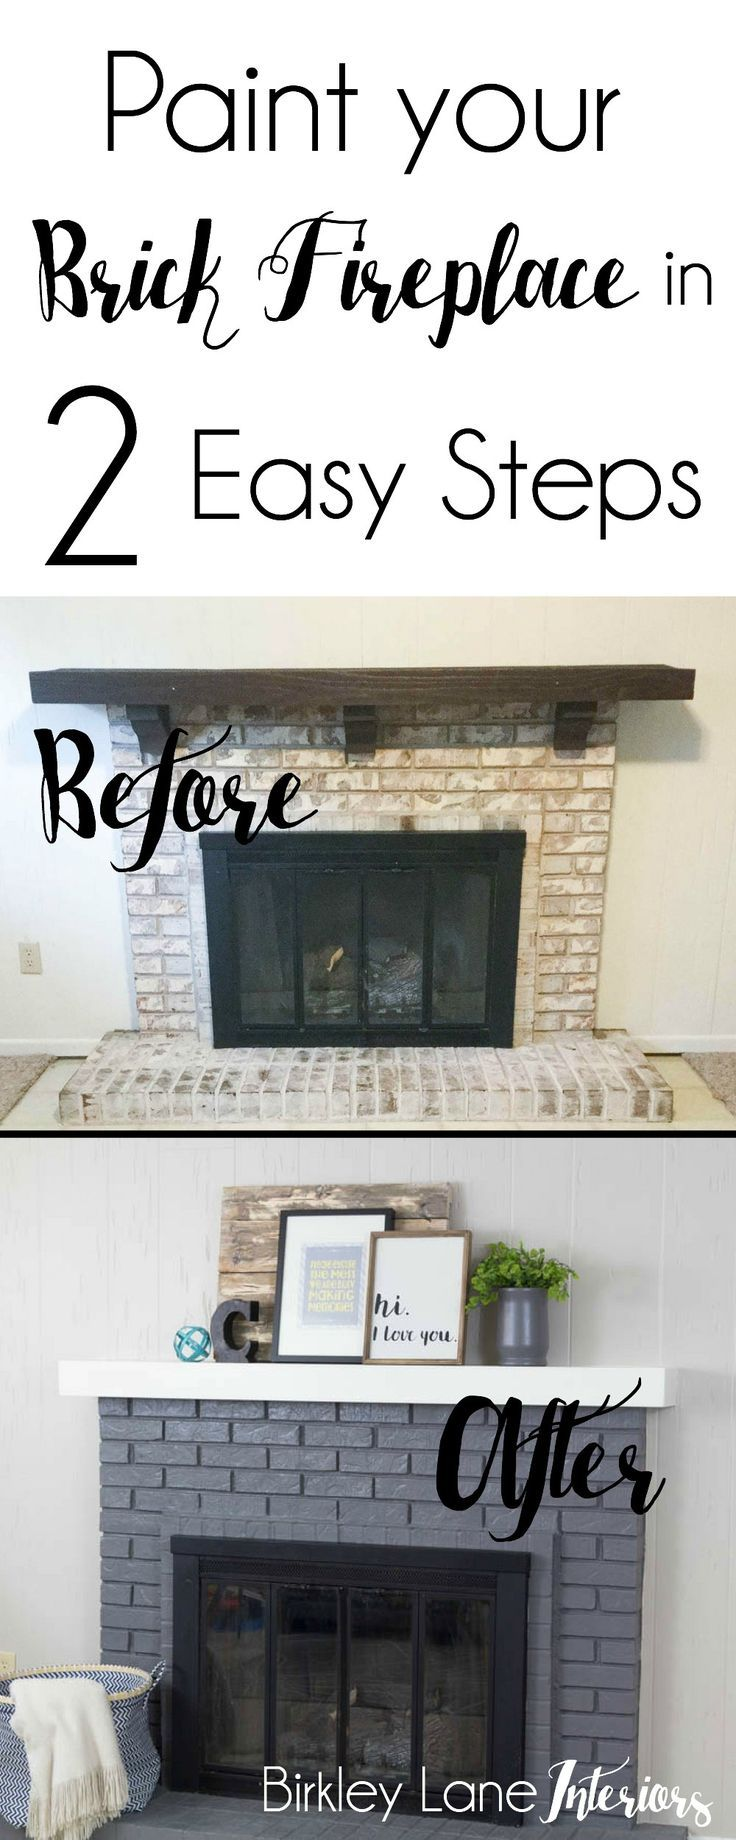 Paint your brick fireplace in two easy steps, the quick and easy way to paint your brick fireplace, how to paint a brick fireplace, brick fireplace makeover, grey fireplace brick, easy fireplace makeover, easy fireplace diy, update fireplace brick, painti